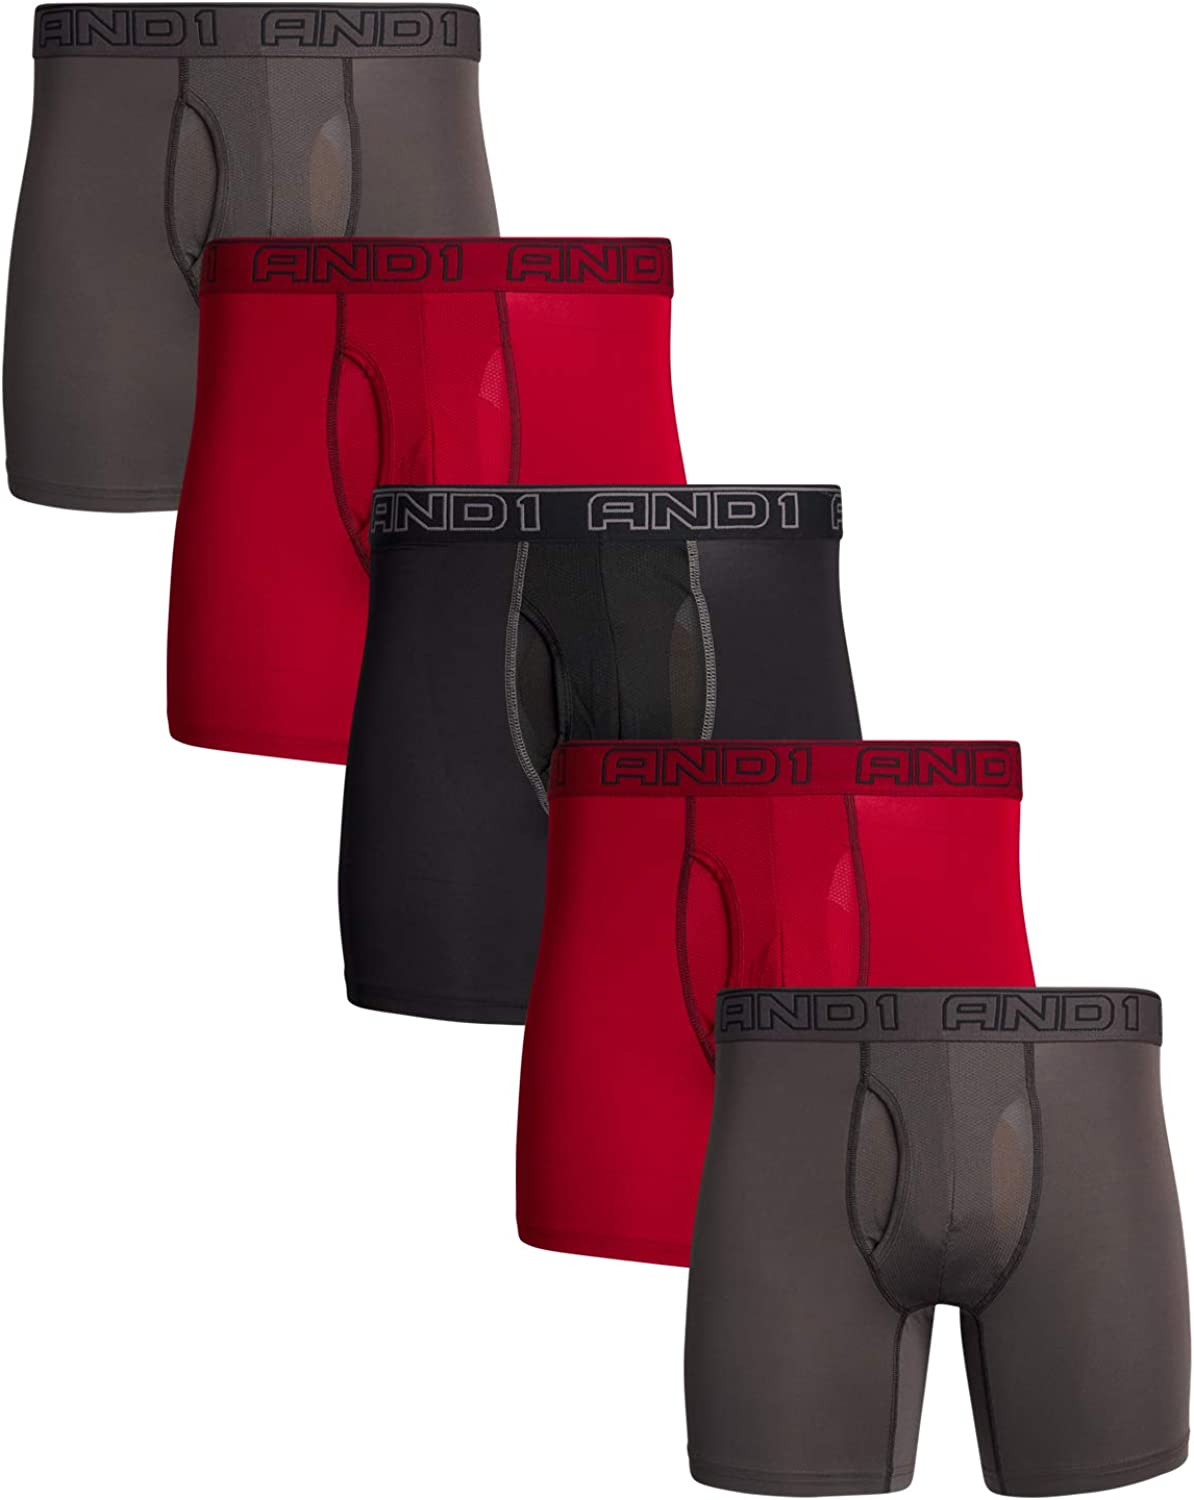 AND1 Men's Performance Compression Boxer Briefs (5 Pack)